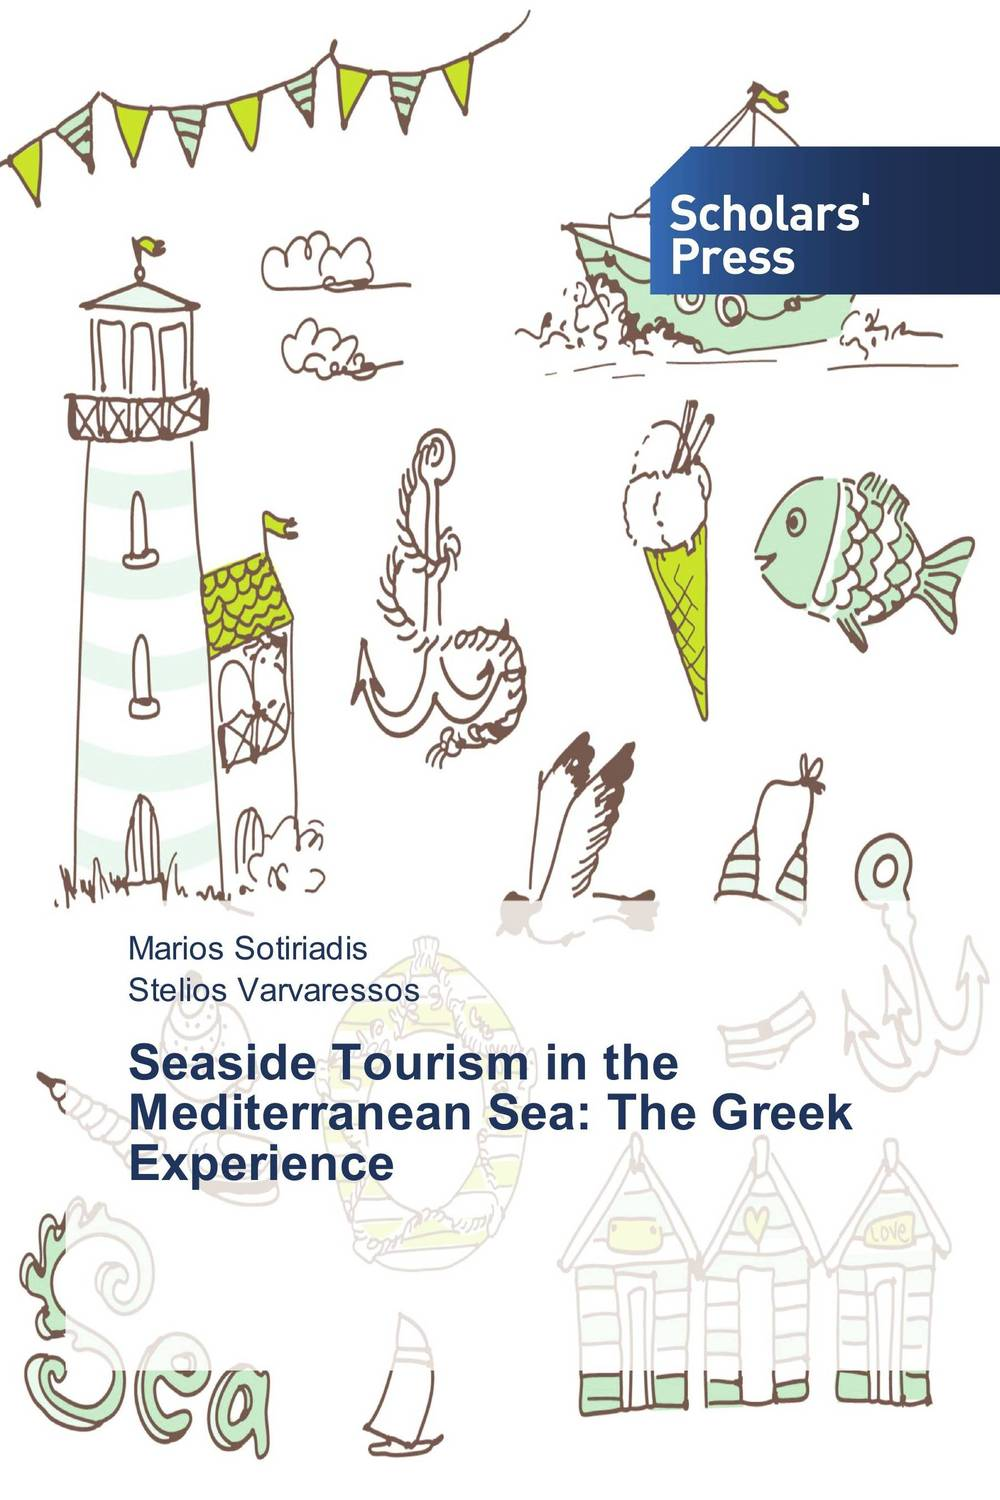 Seaside Tourism in the Mediterranean Sea: The Greek Experience